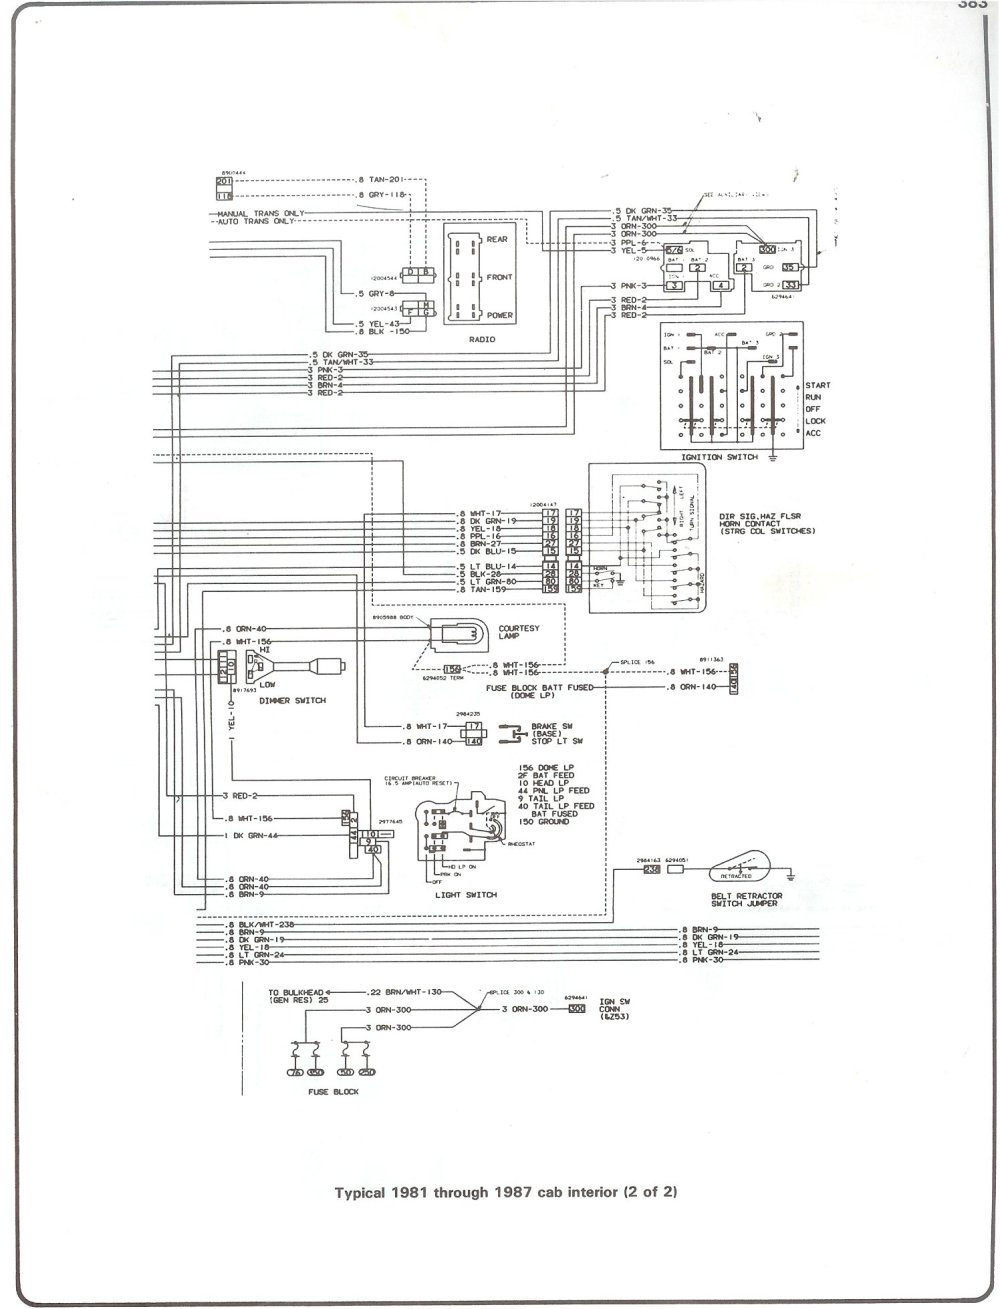 medium resolution of complete 73 87 wiring diagrams mix 81 87 cab interior page 2